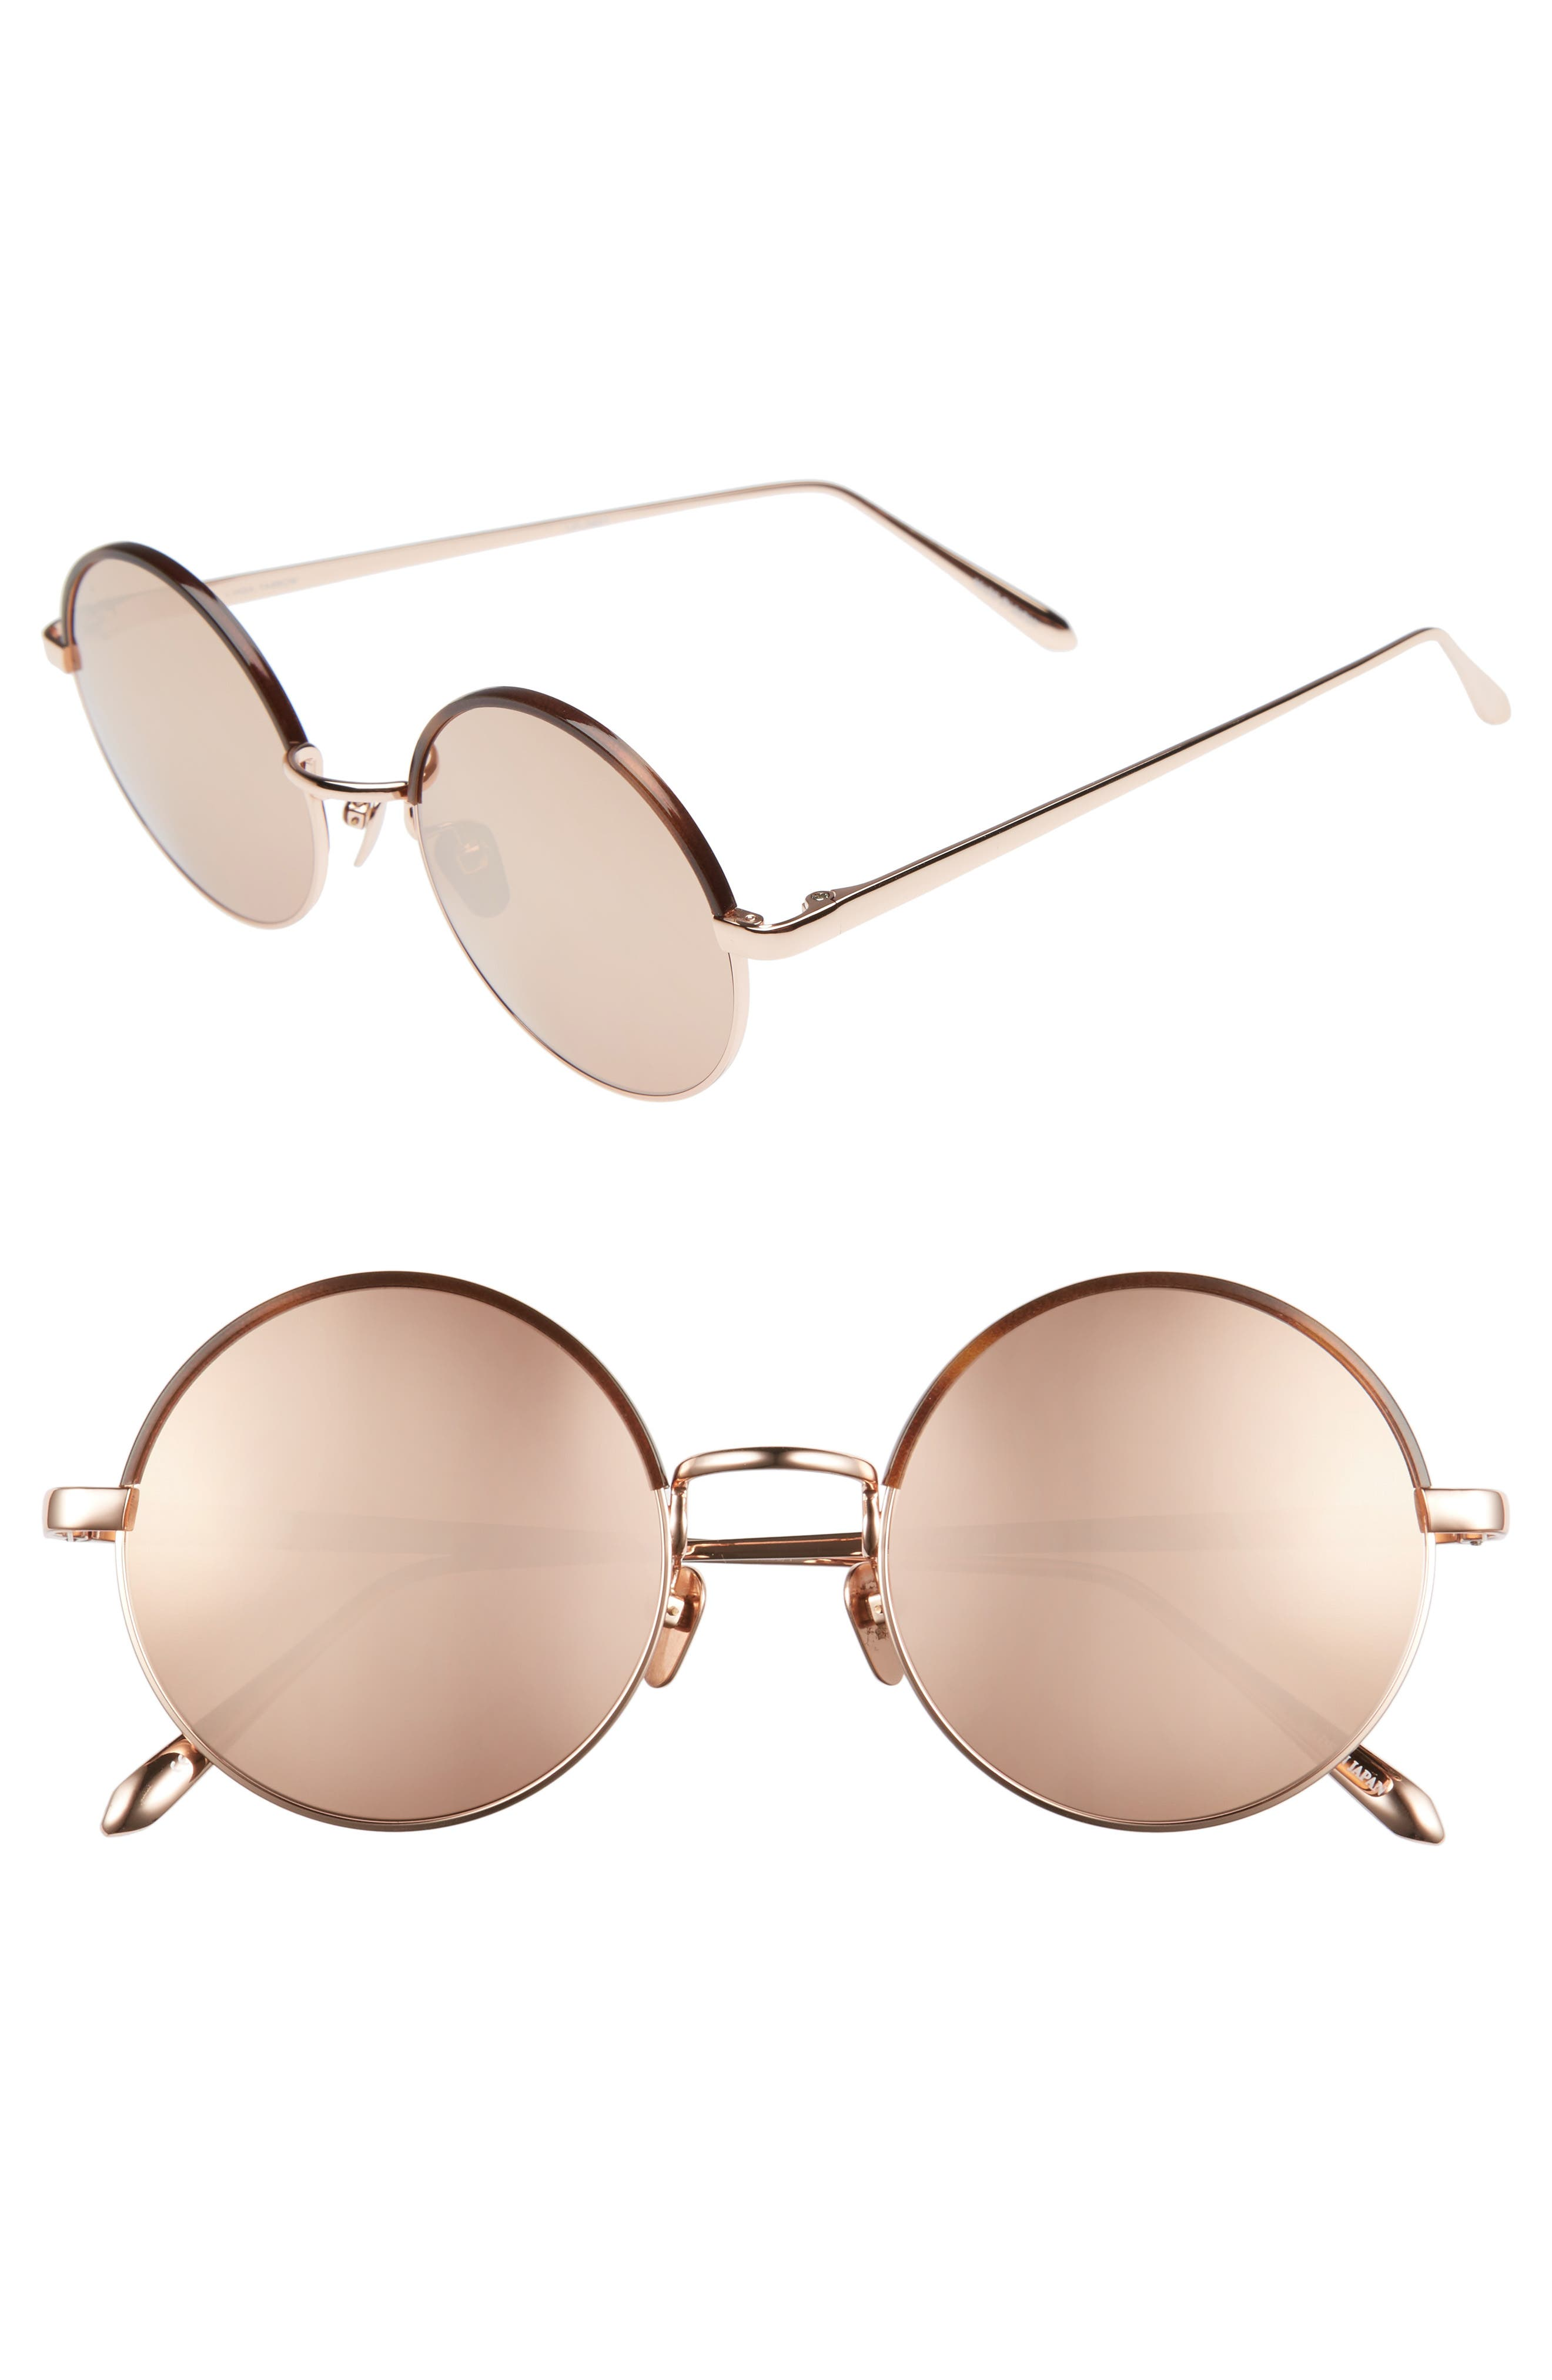 Alternate Image 1 Selected - Linda Farrow 51mm Mirrored 18 Karat Gold Trim Round Sunglasses